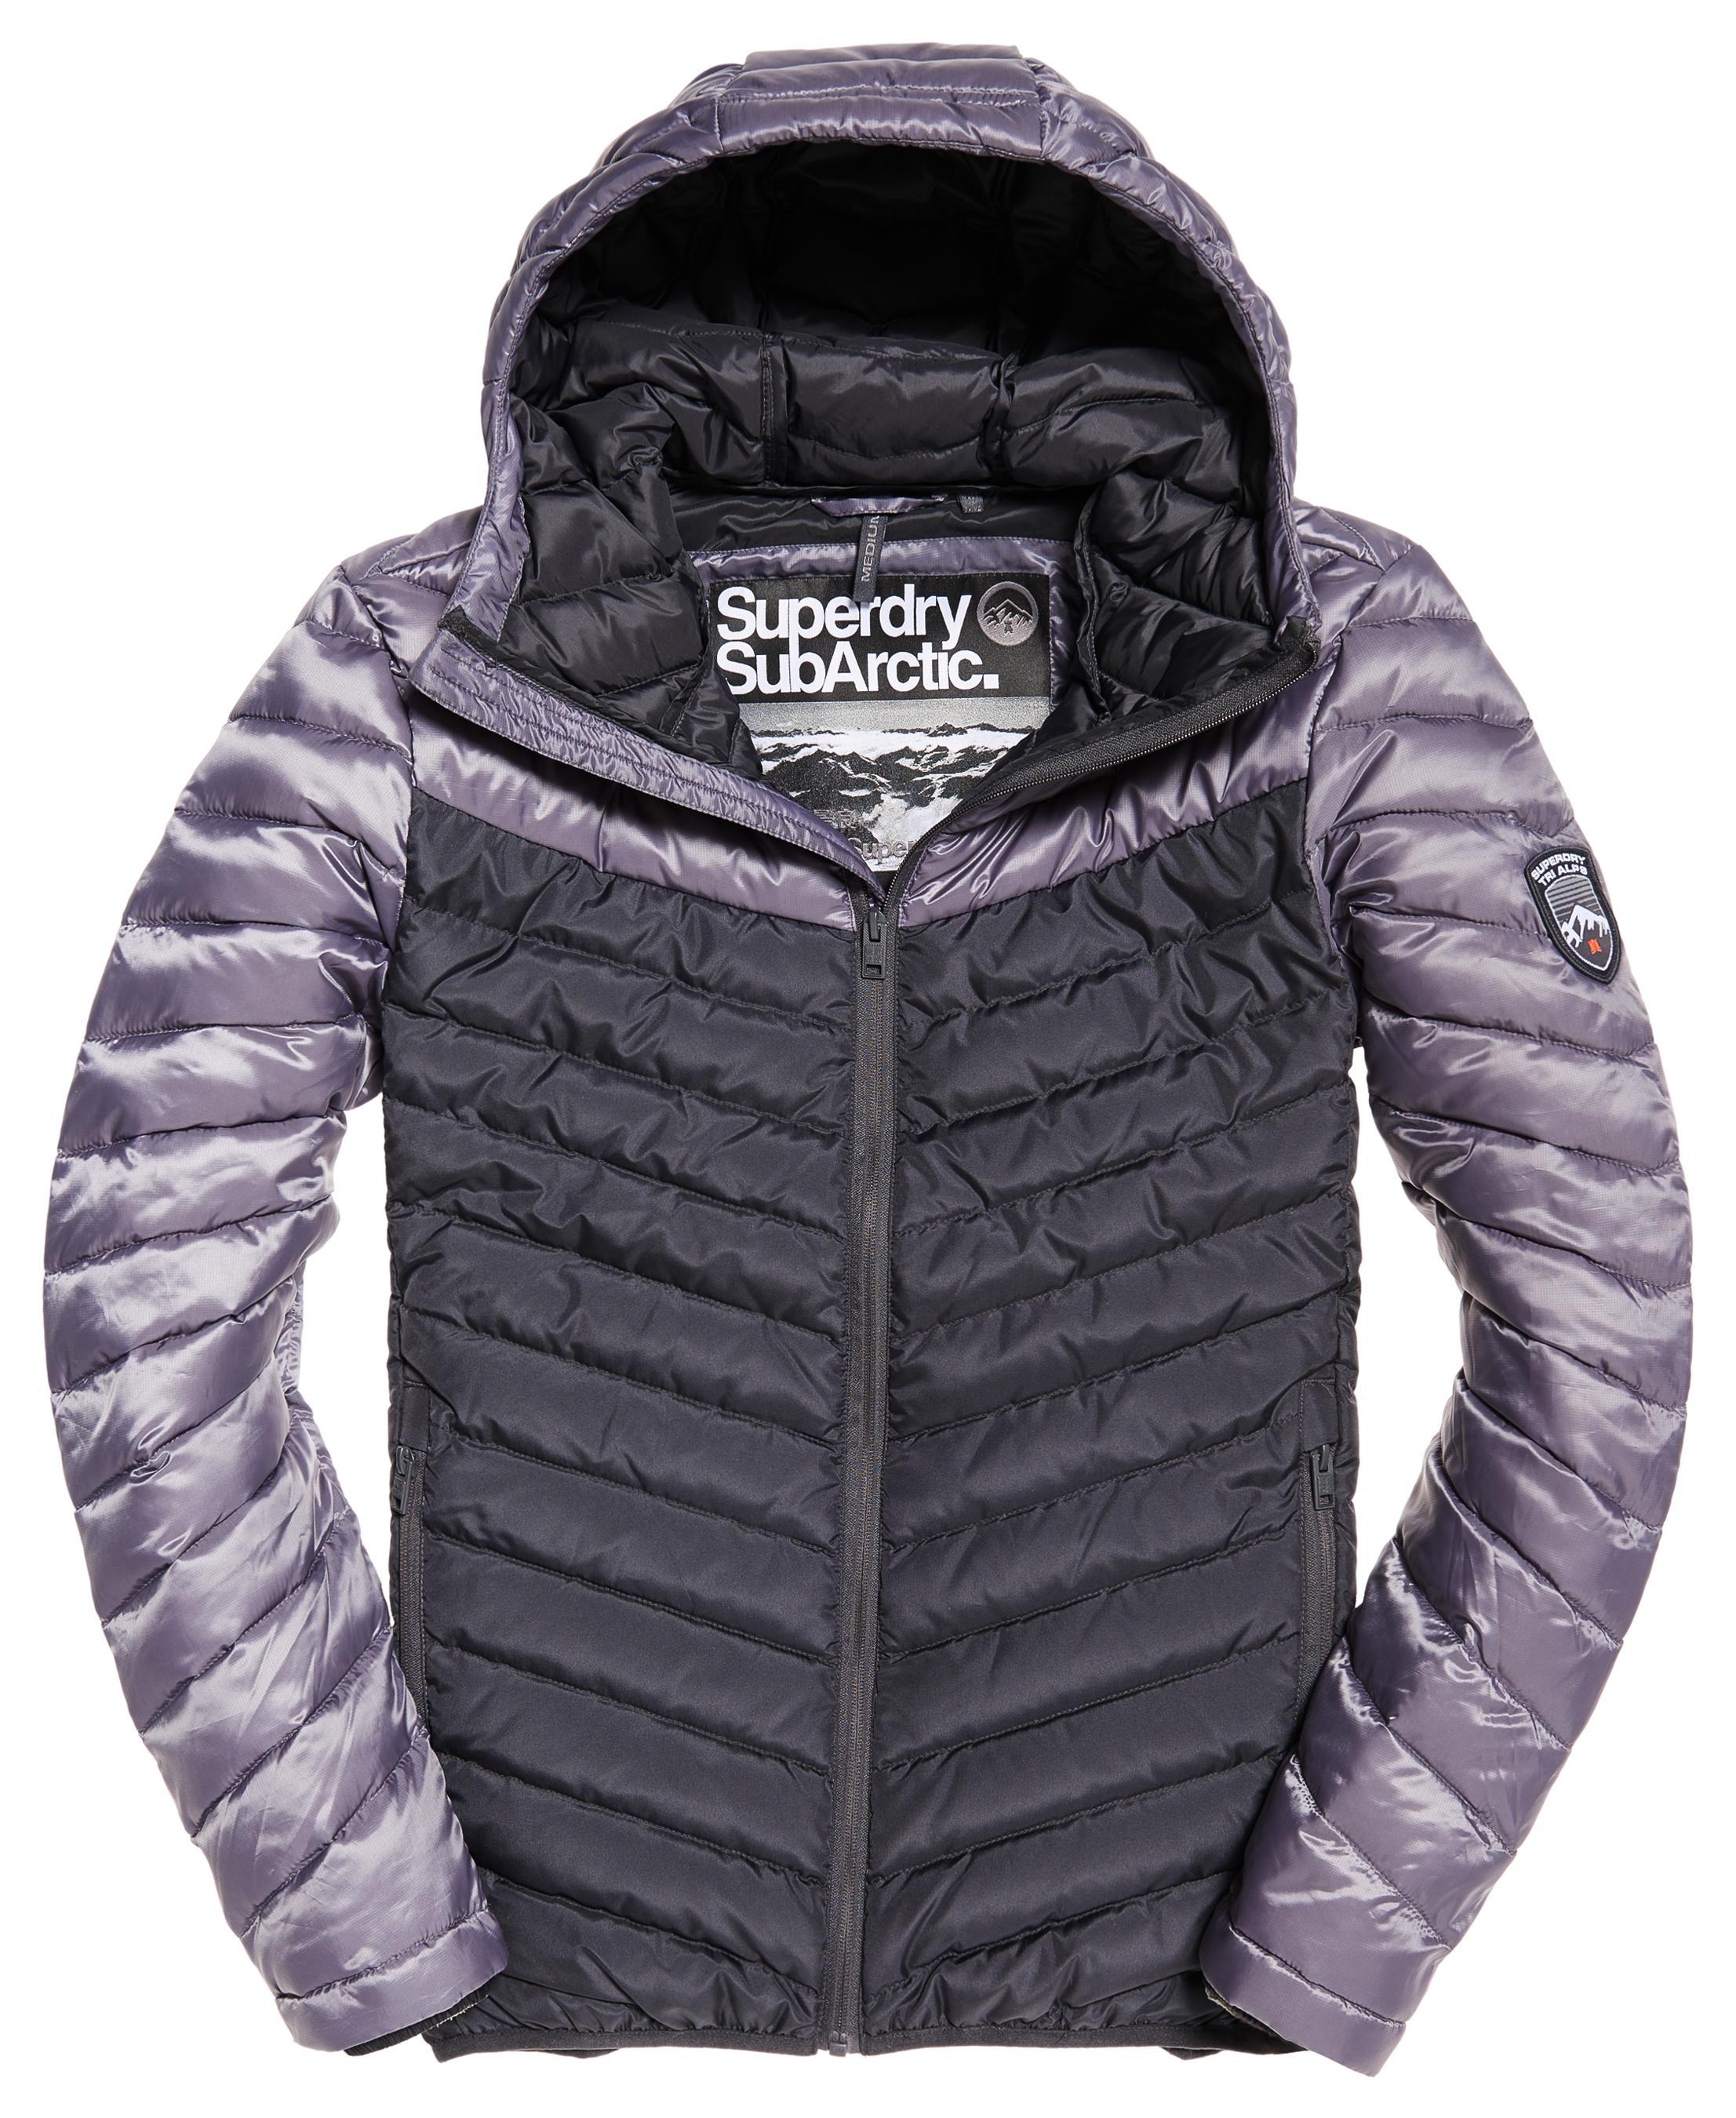 Superdry Chevron Colour Block Down Jacket £99.99 - 139.95€ www.superdry.com.jpg